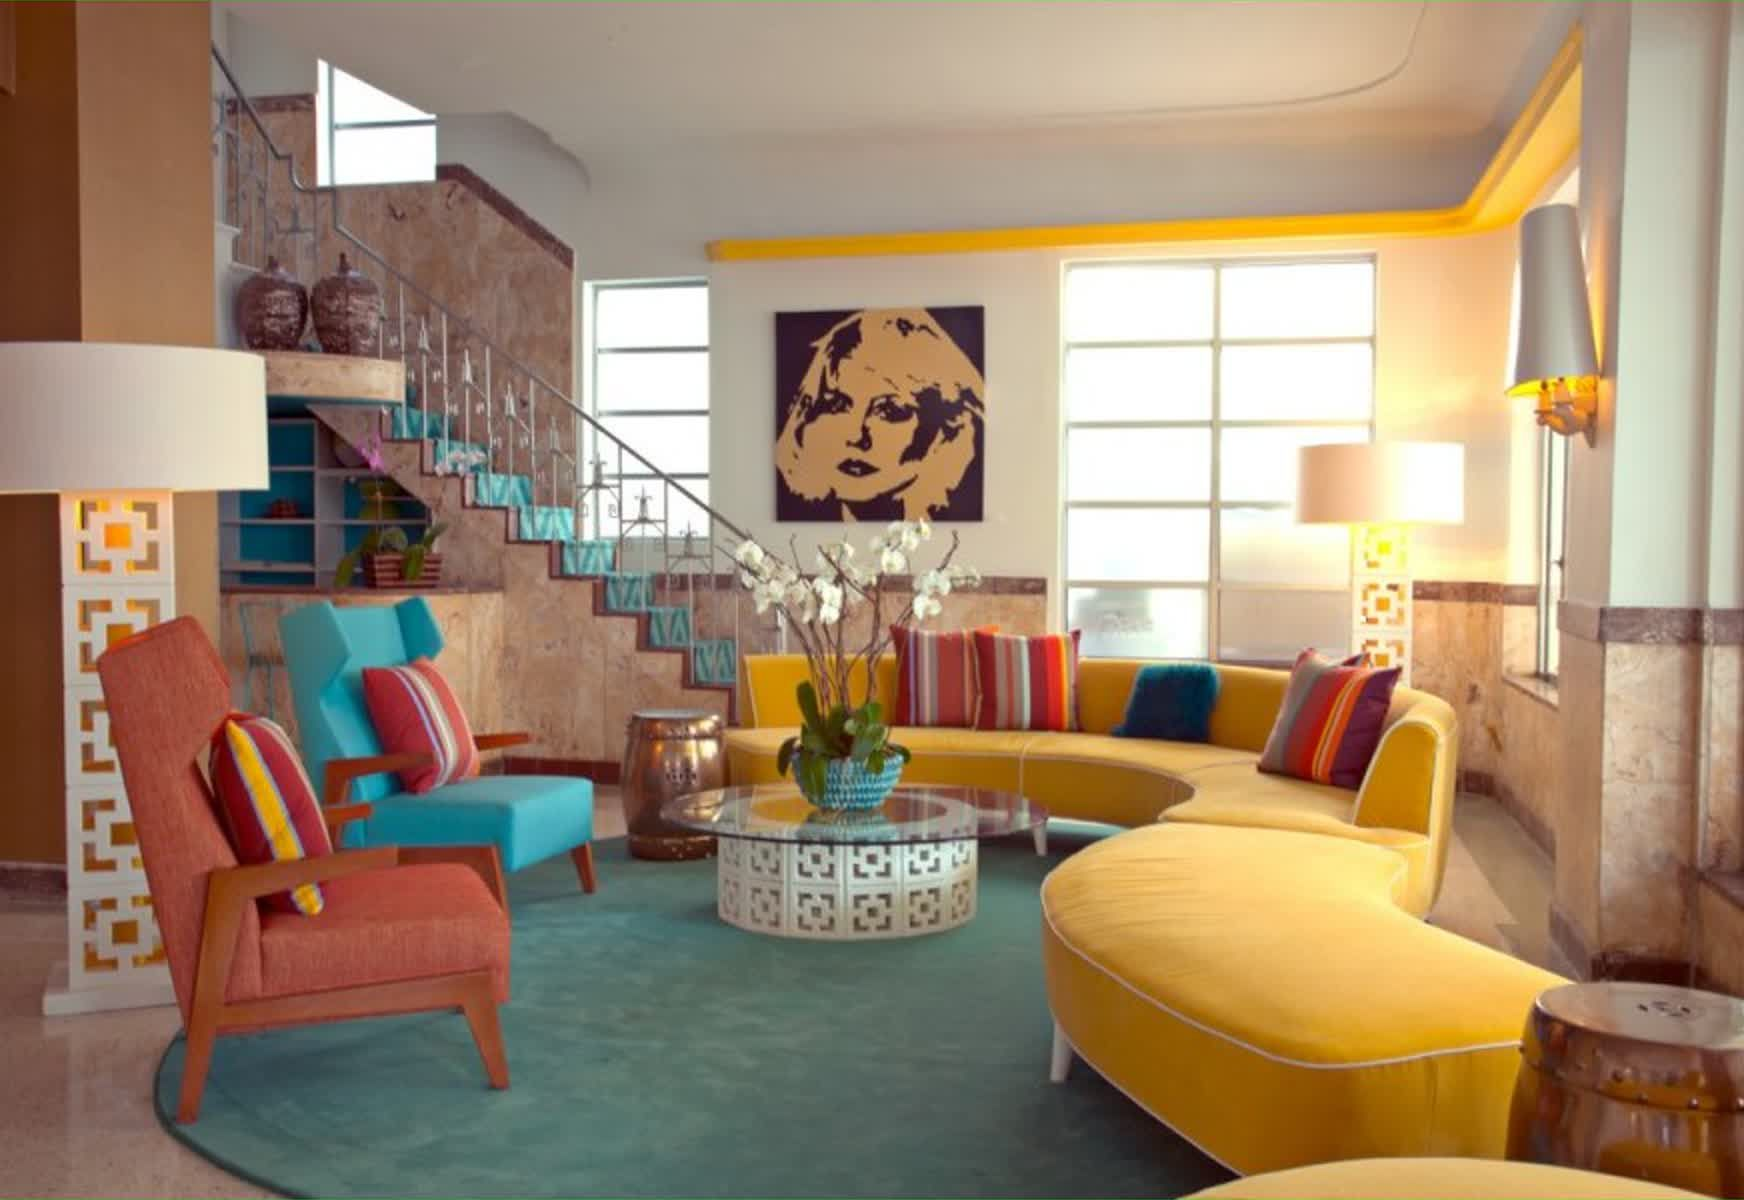 Bold, colorful, and funky decorative textures accents the Retro style